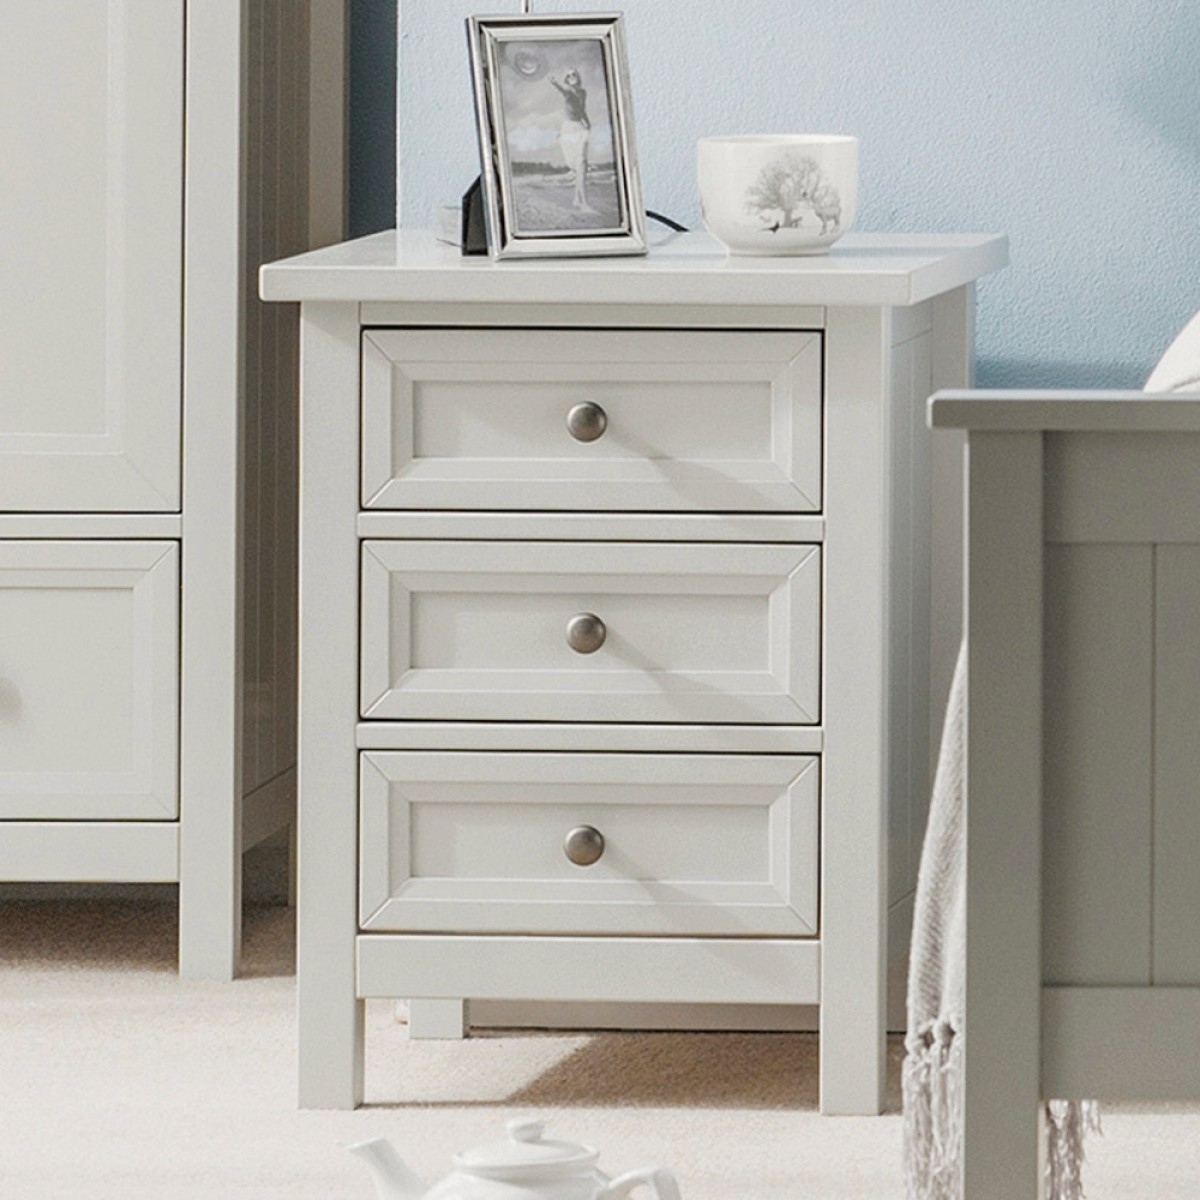 maine dove grey 3 drawer wooden bedside table